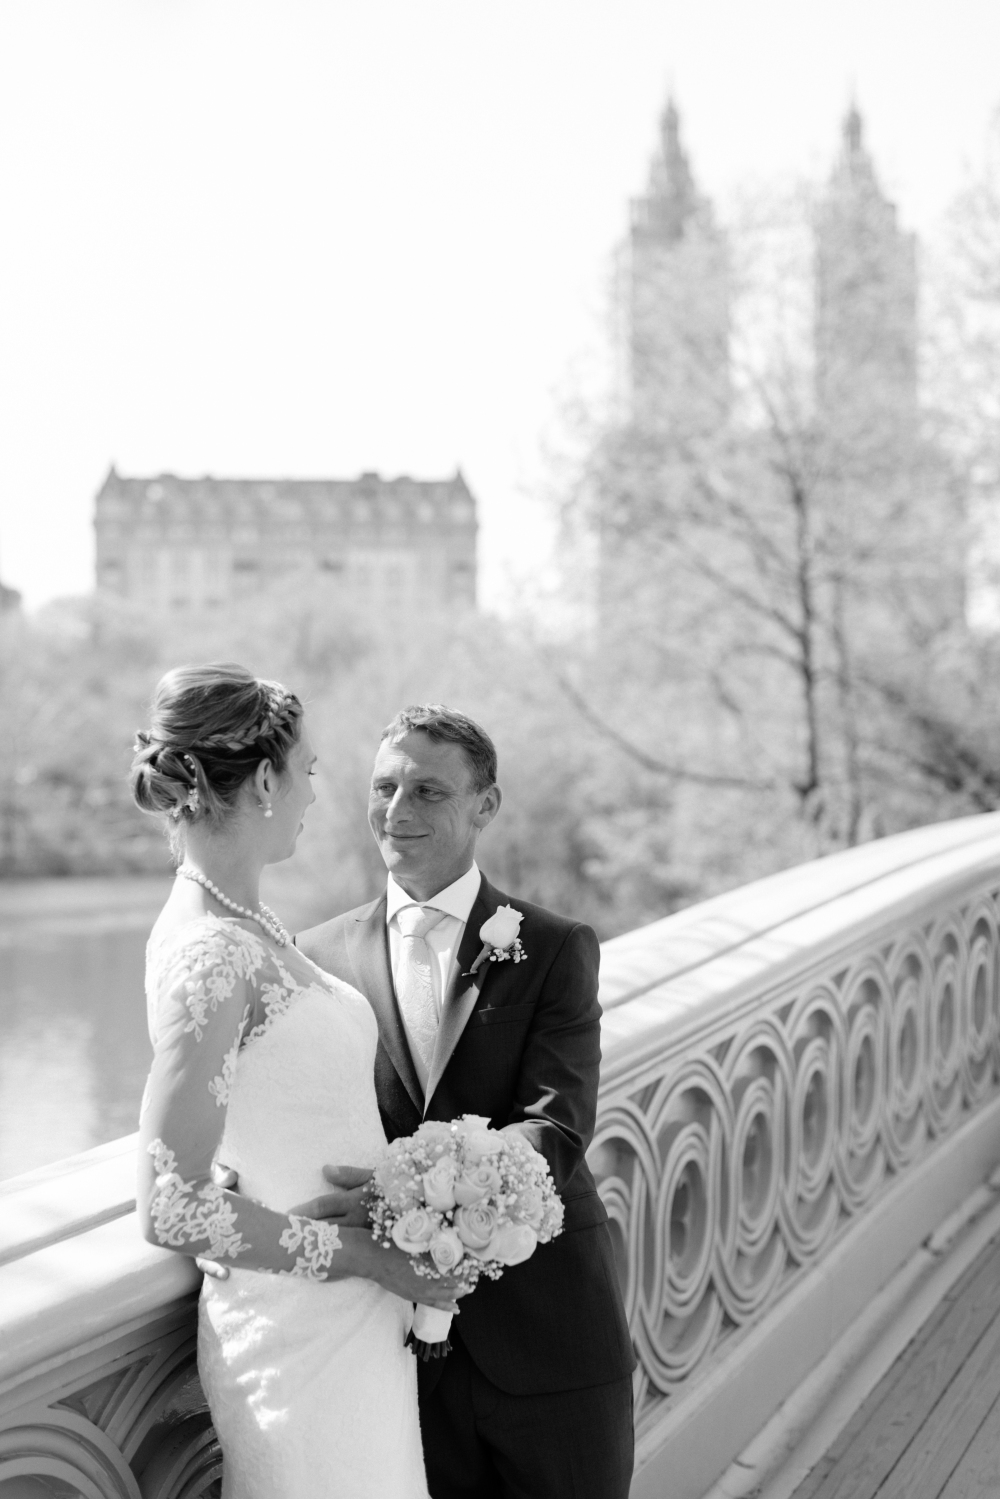 Wagner-cove-central-park-wedding-SS-228